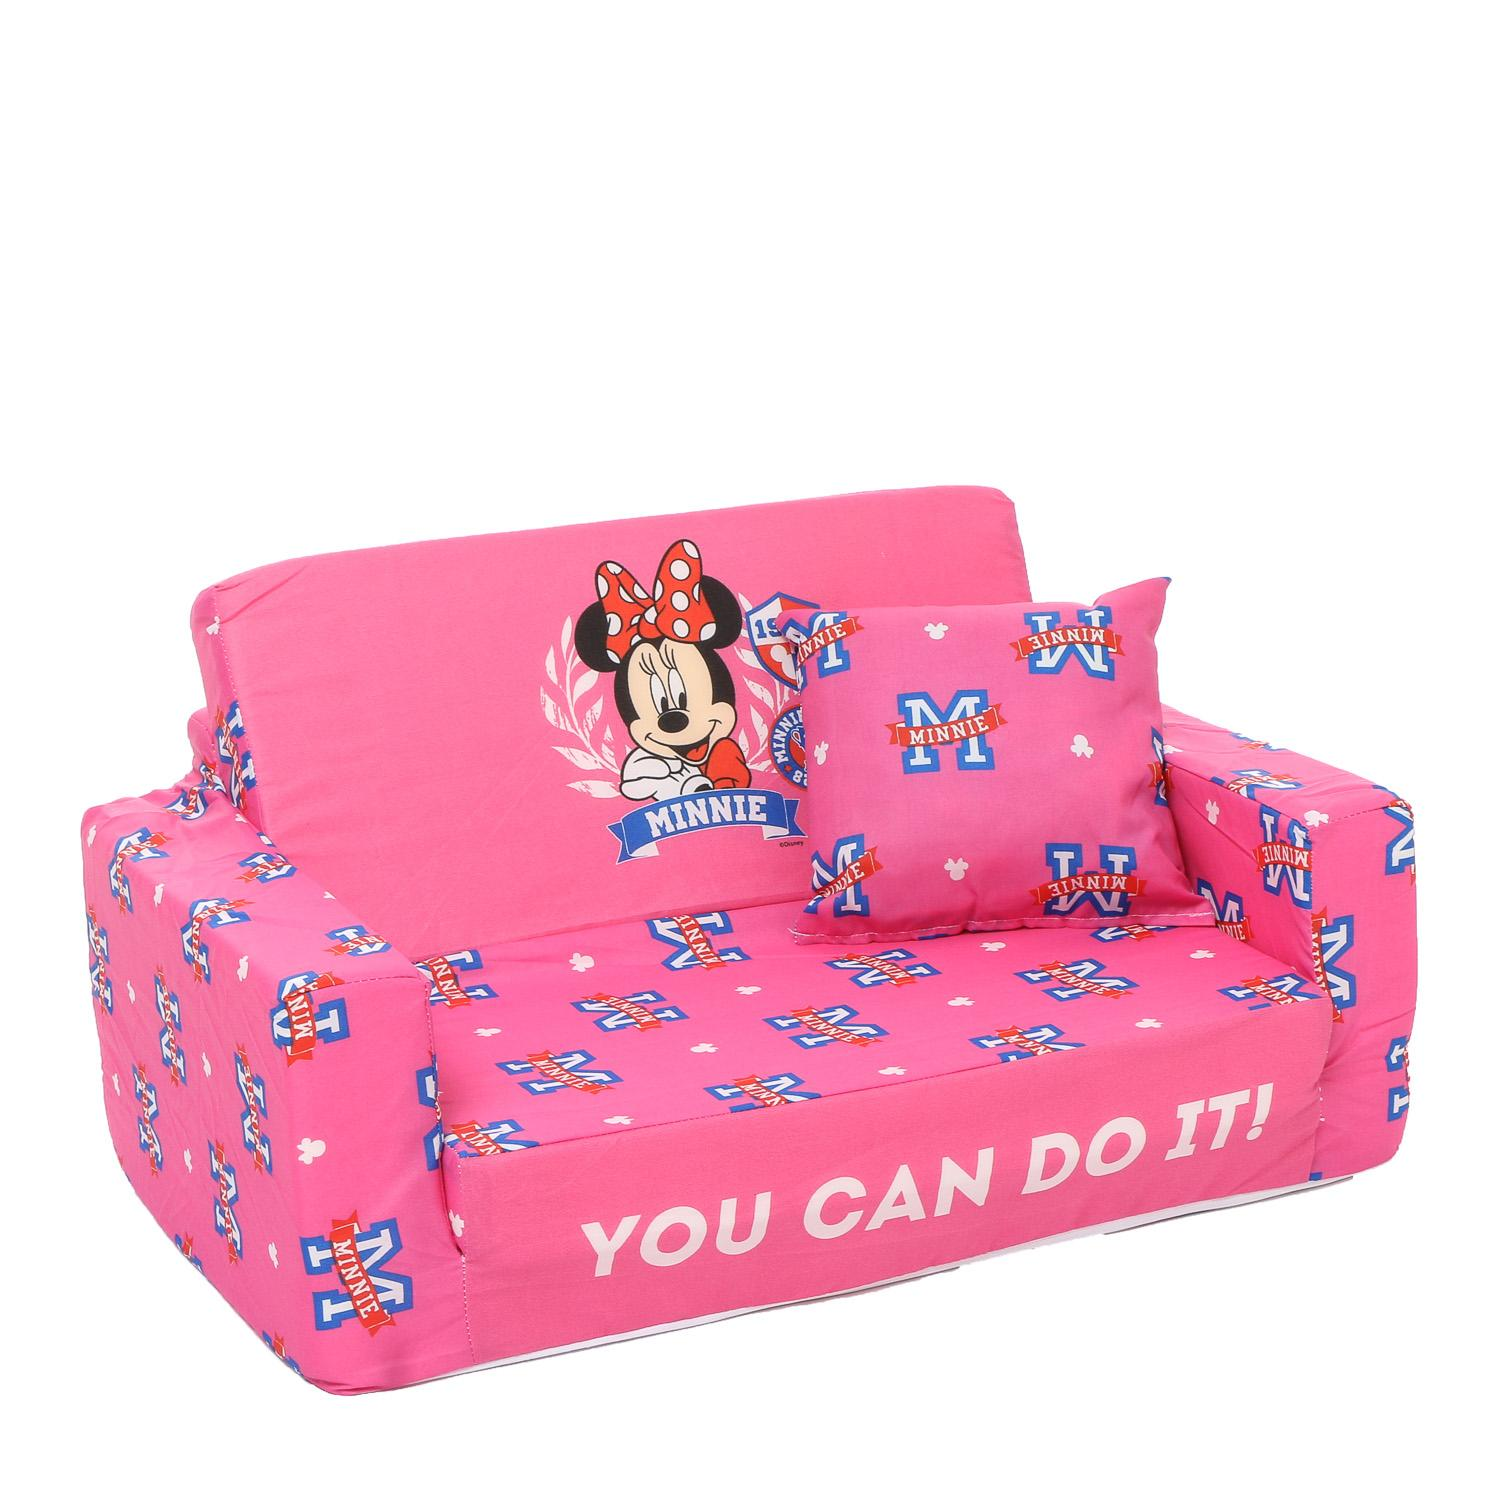 Uratex Kiddie Sit And Sleep Disney Minnie Mouse Convertible Bed By The Sm Store.